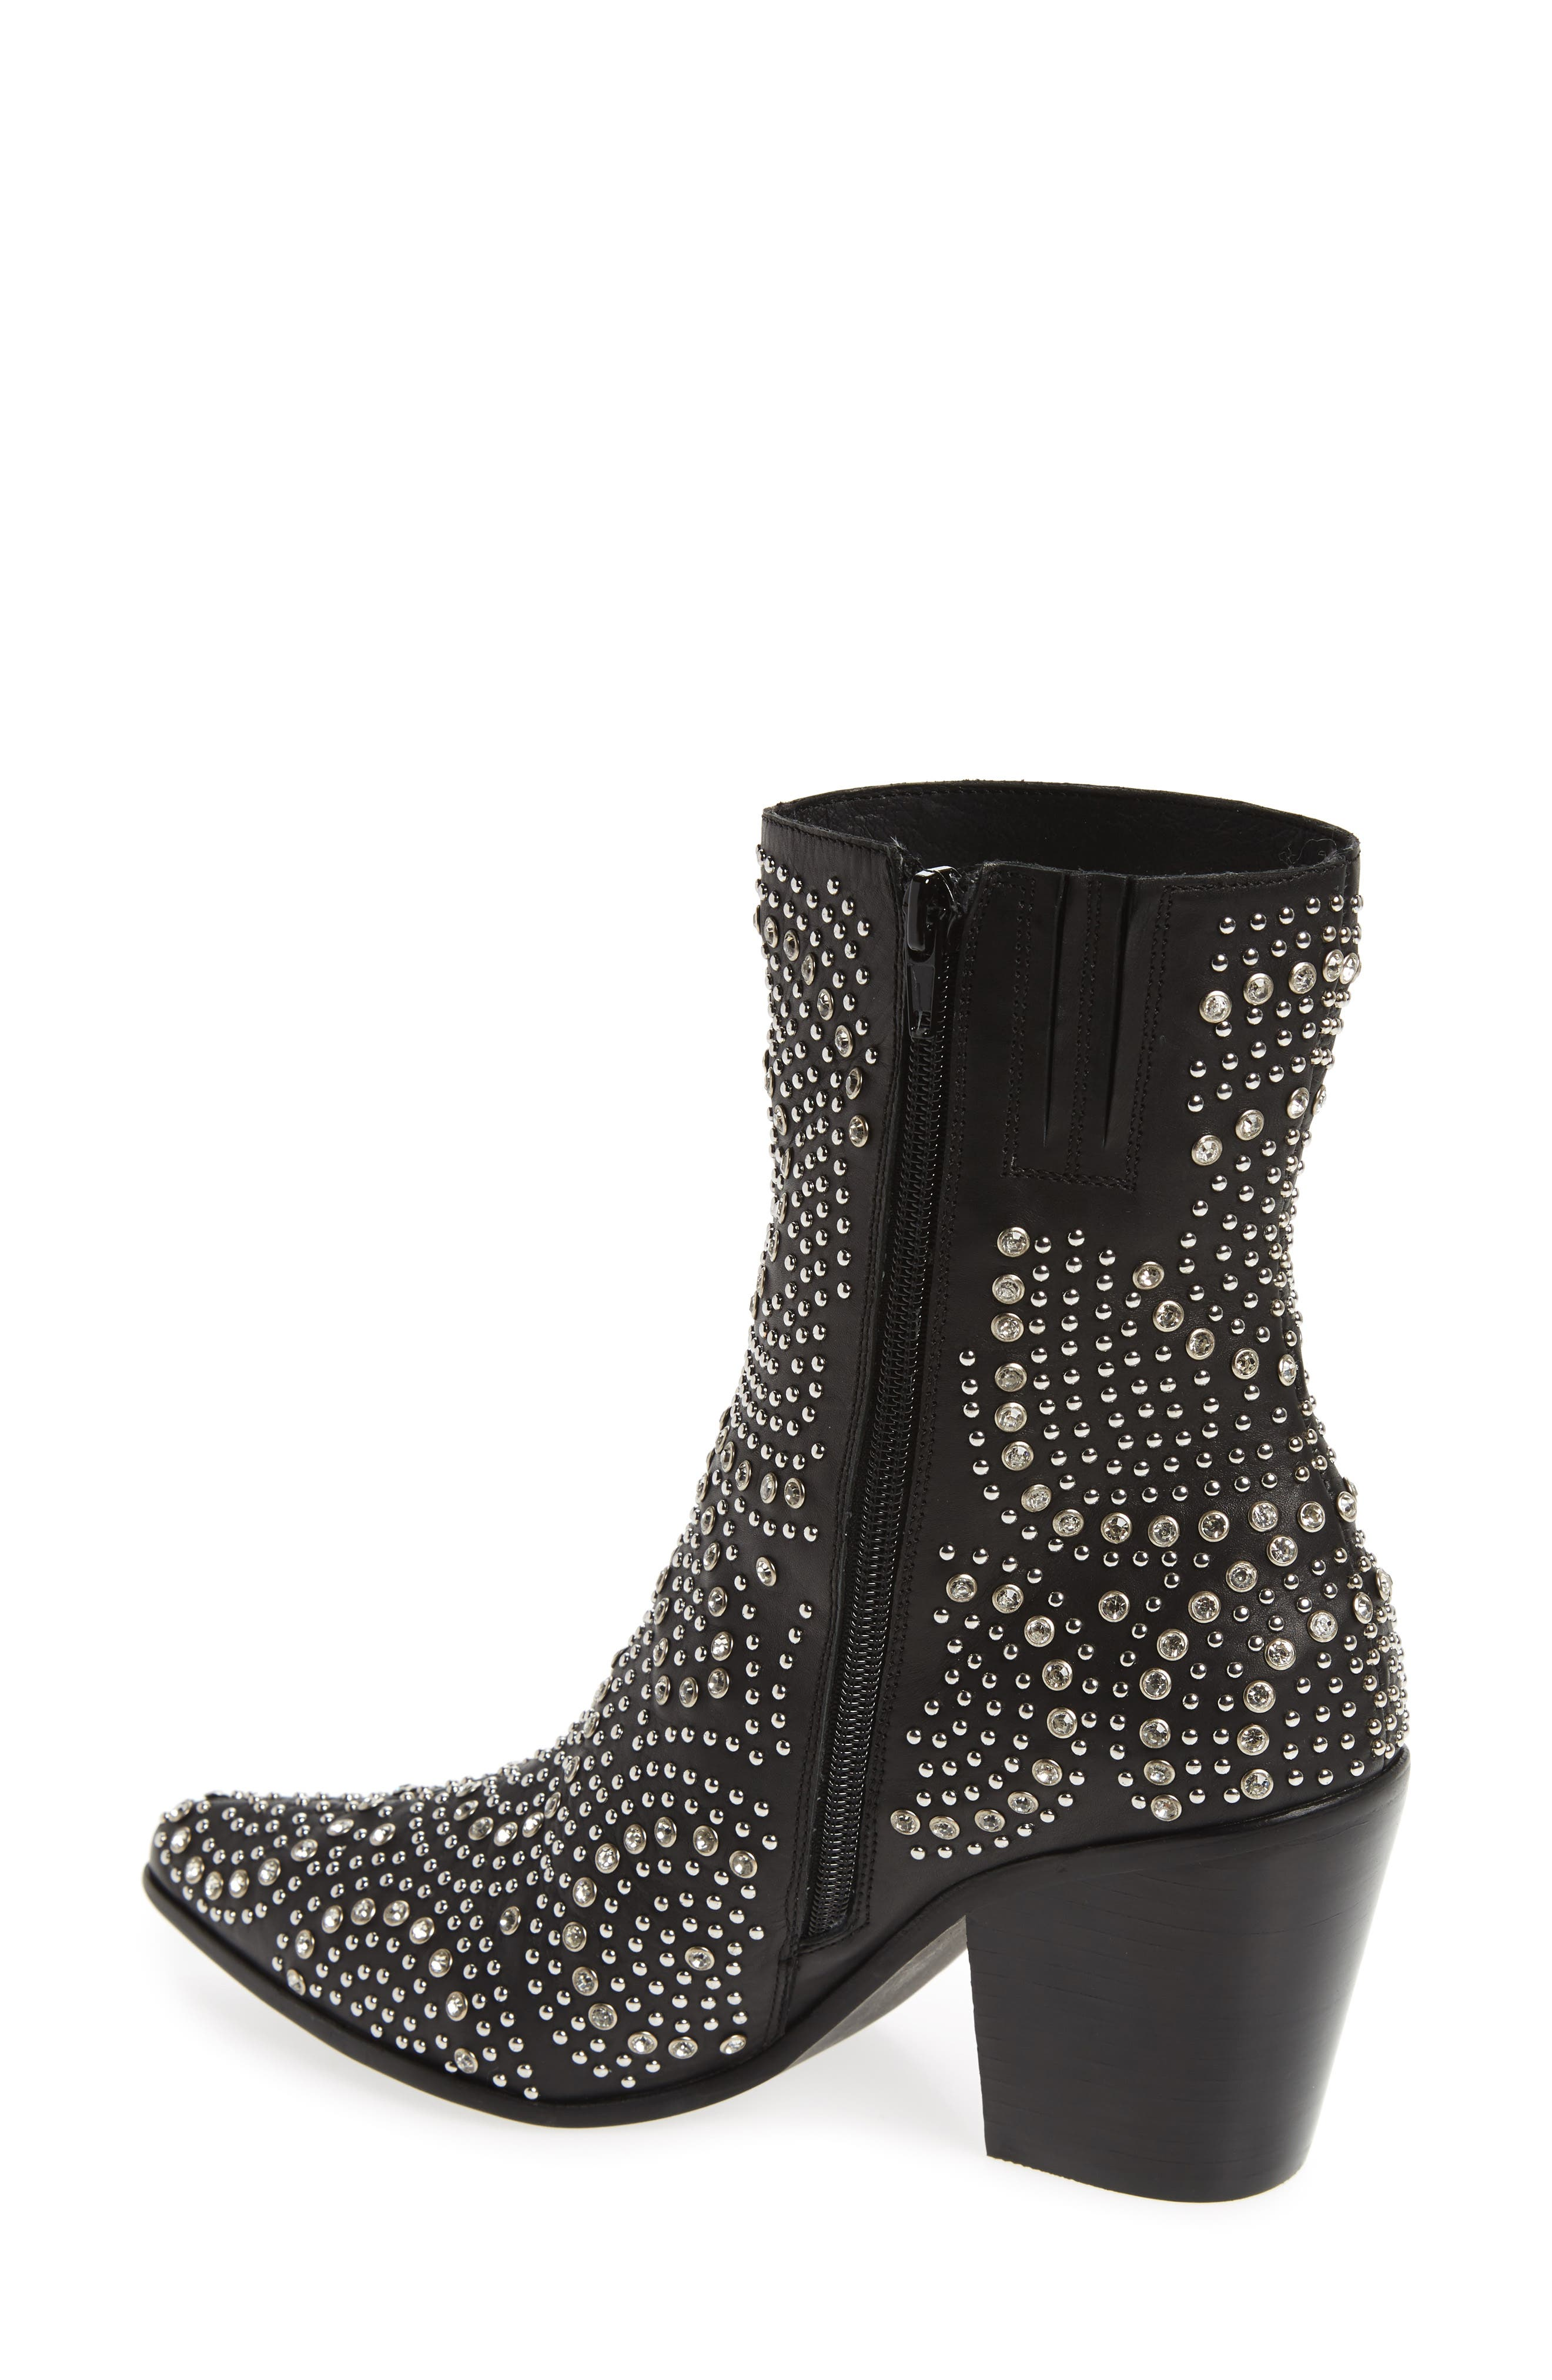 ACE-SJ Embellished Bootie,                             Alternate thumbnail 2, color,                             BLACK/ SILVER SUEDE